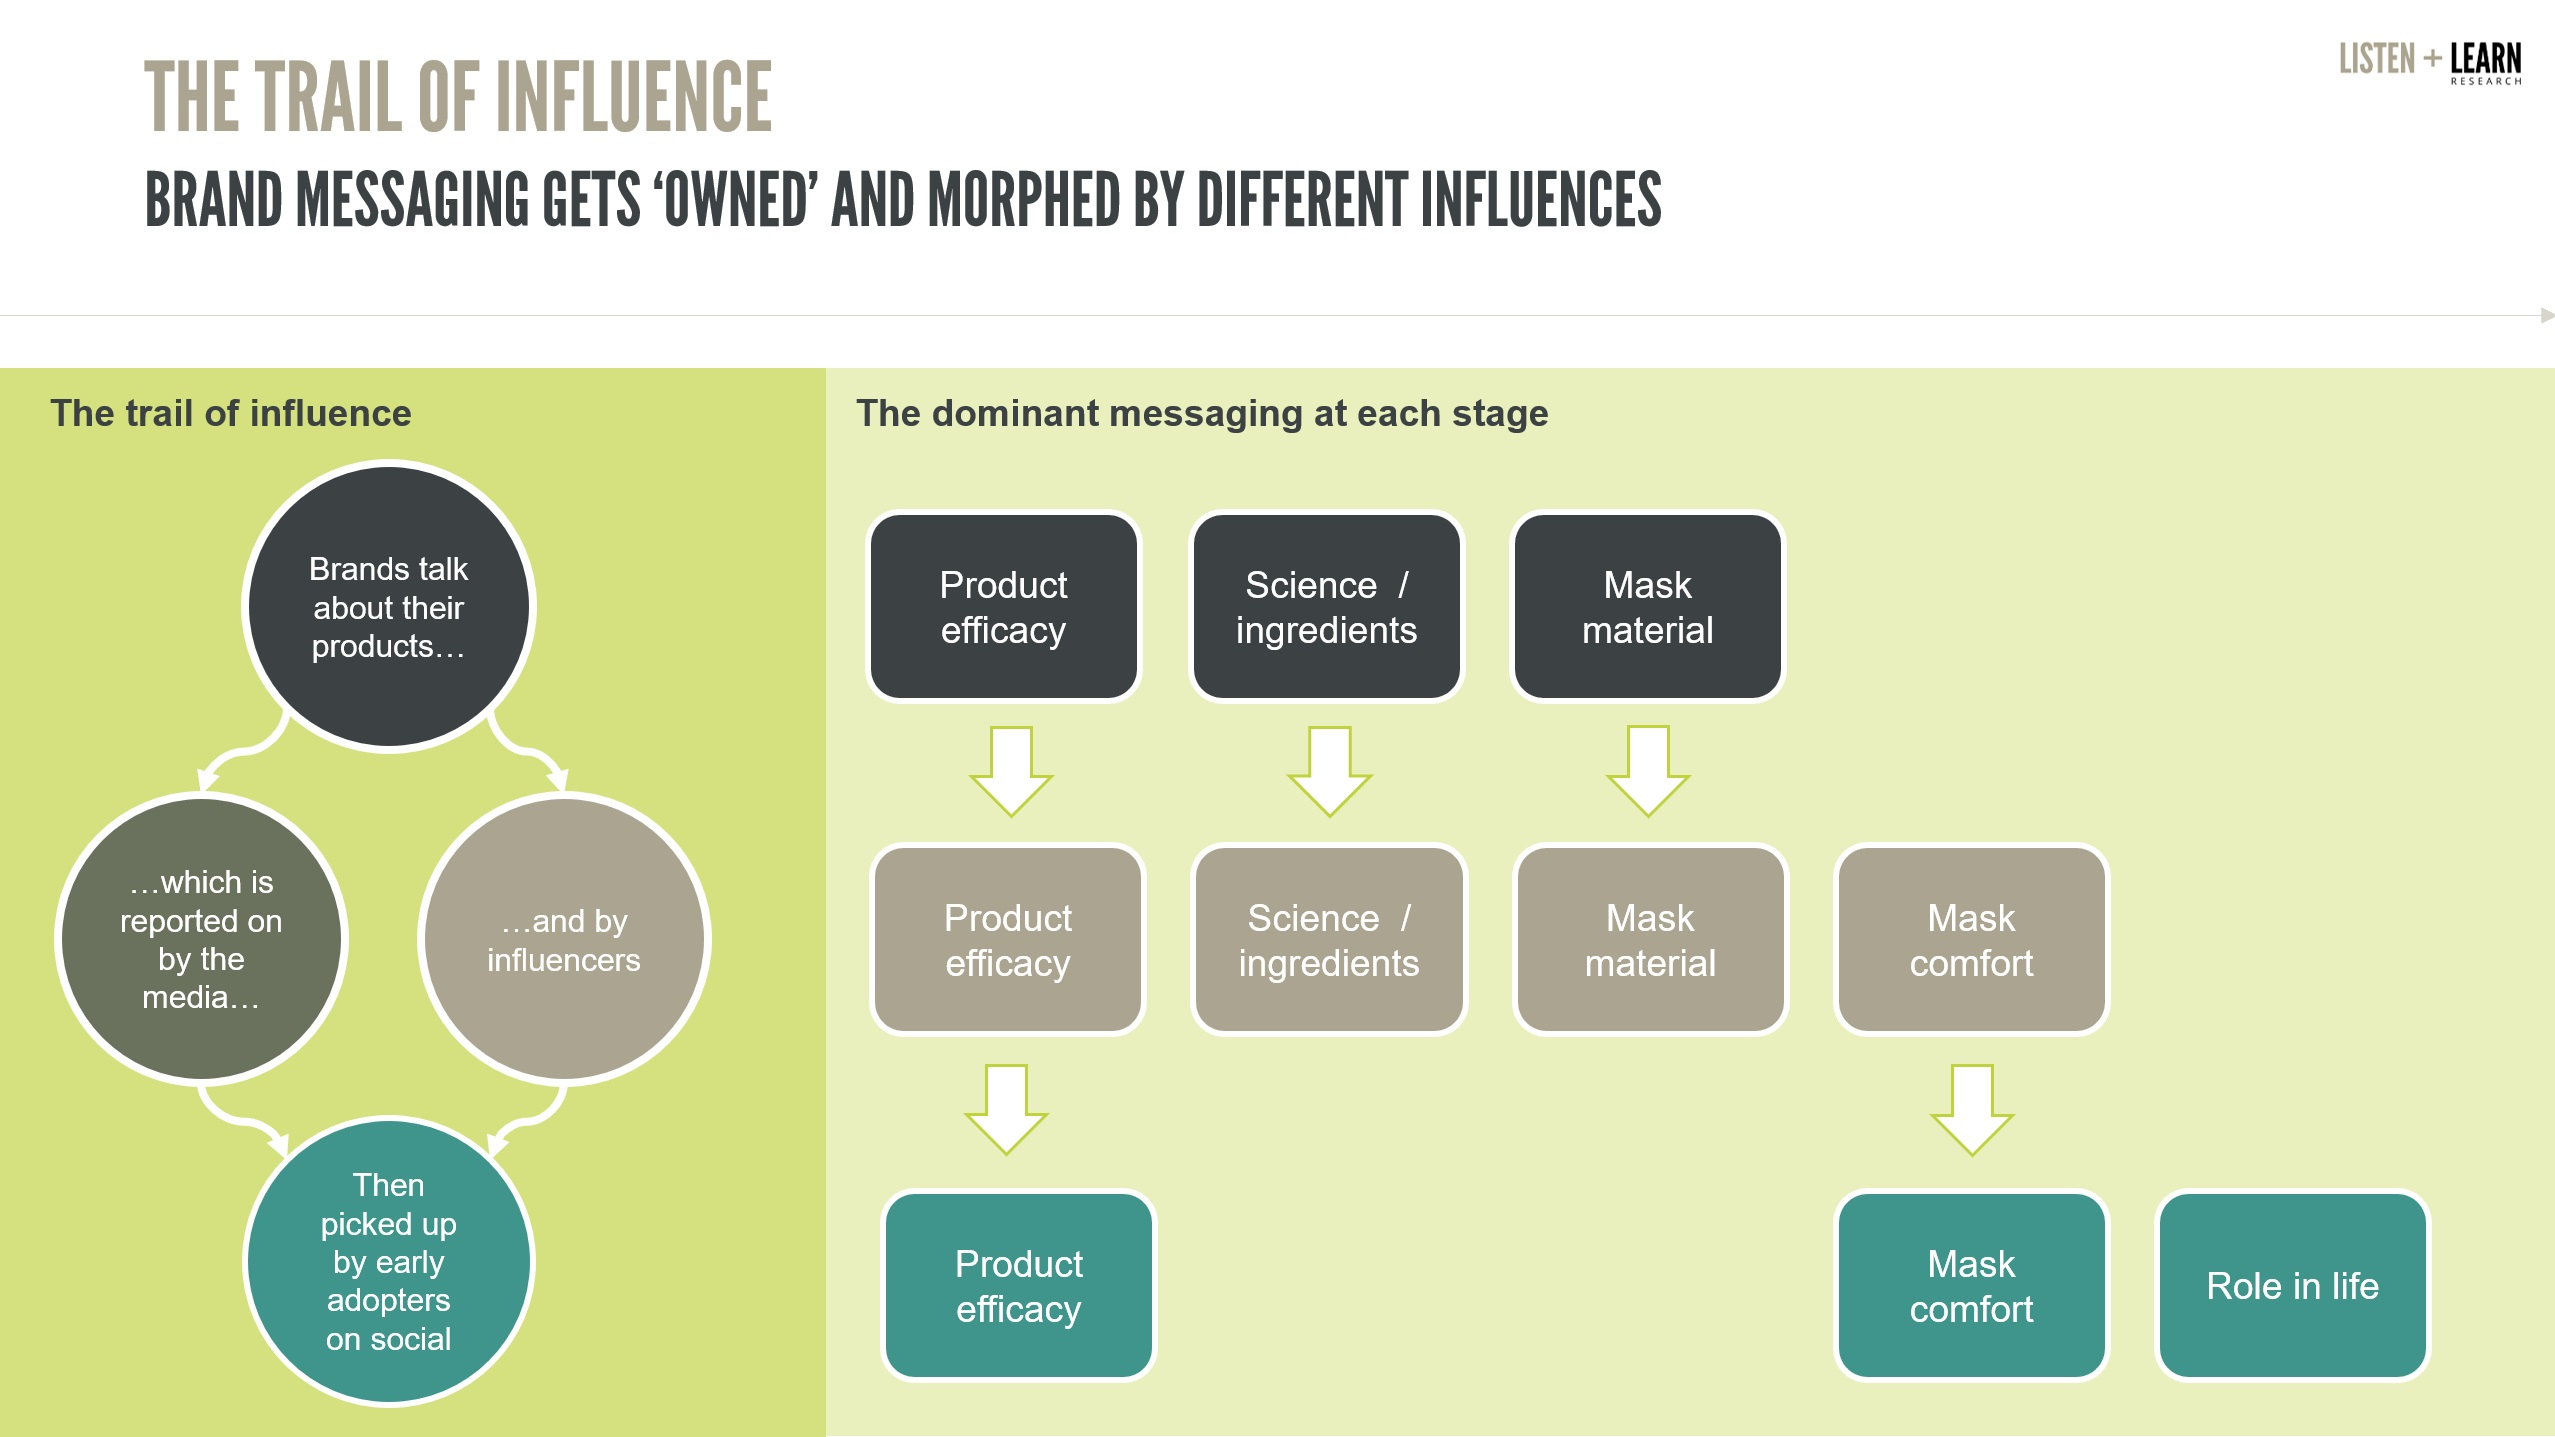 The trail of influence